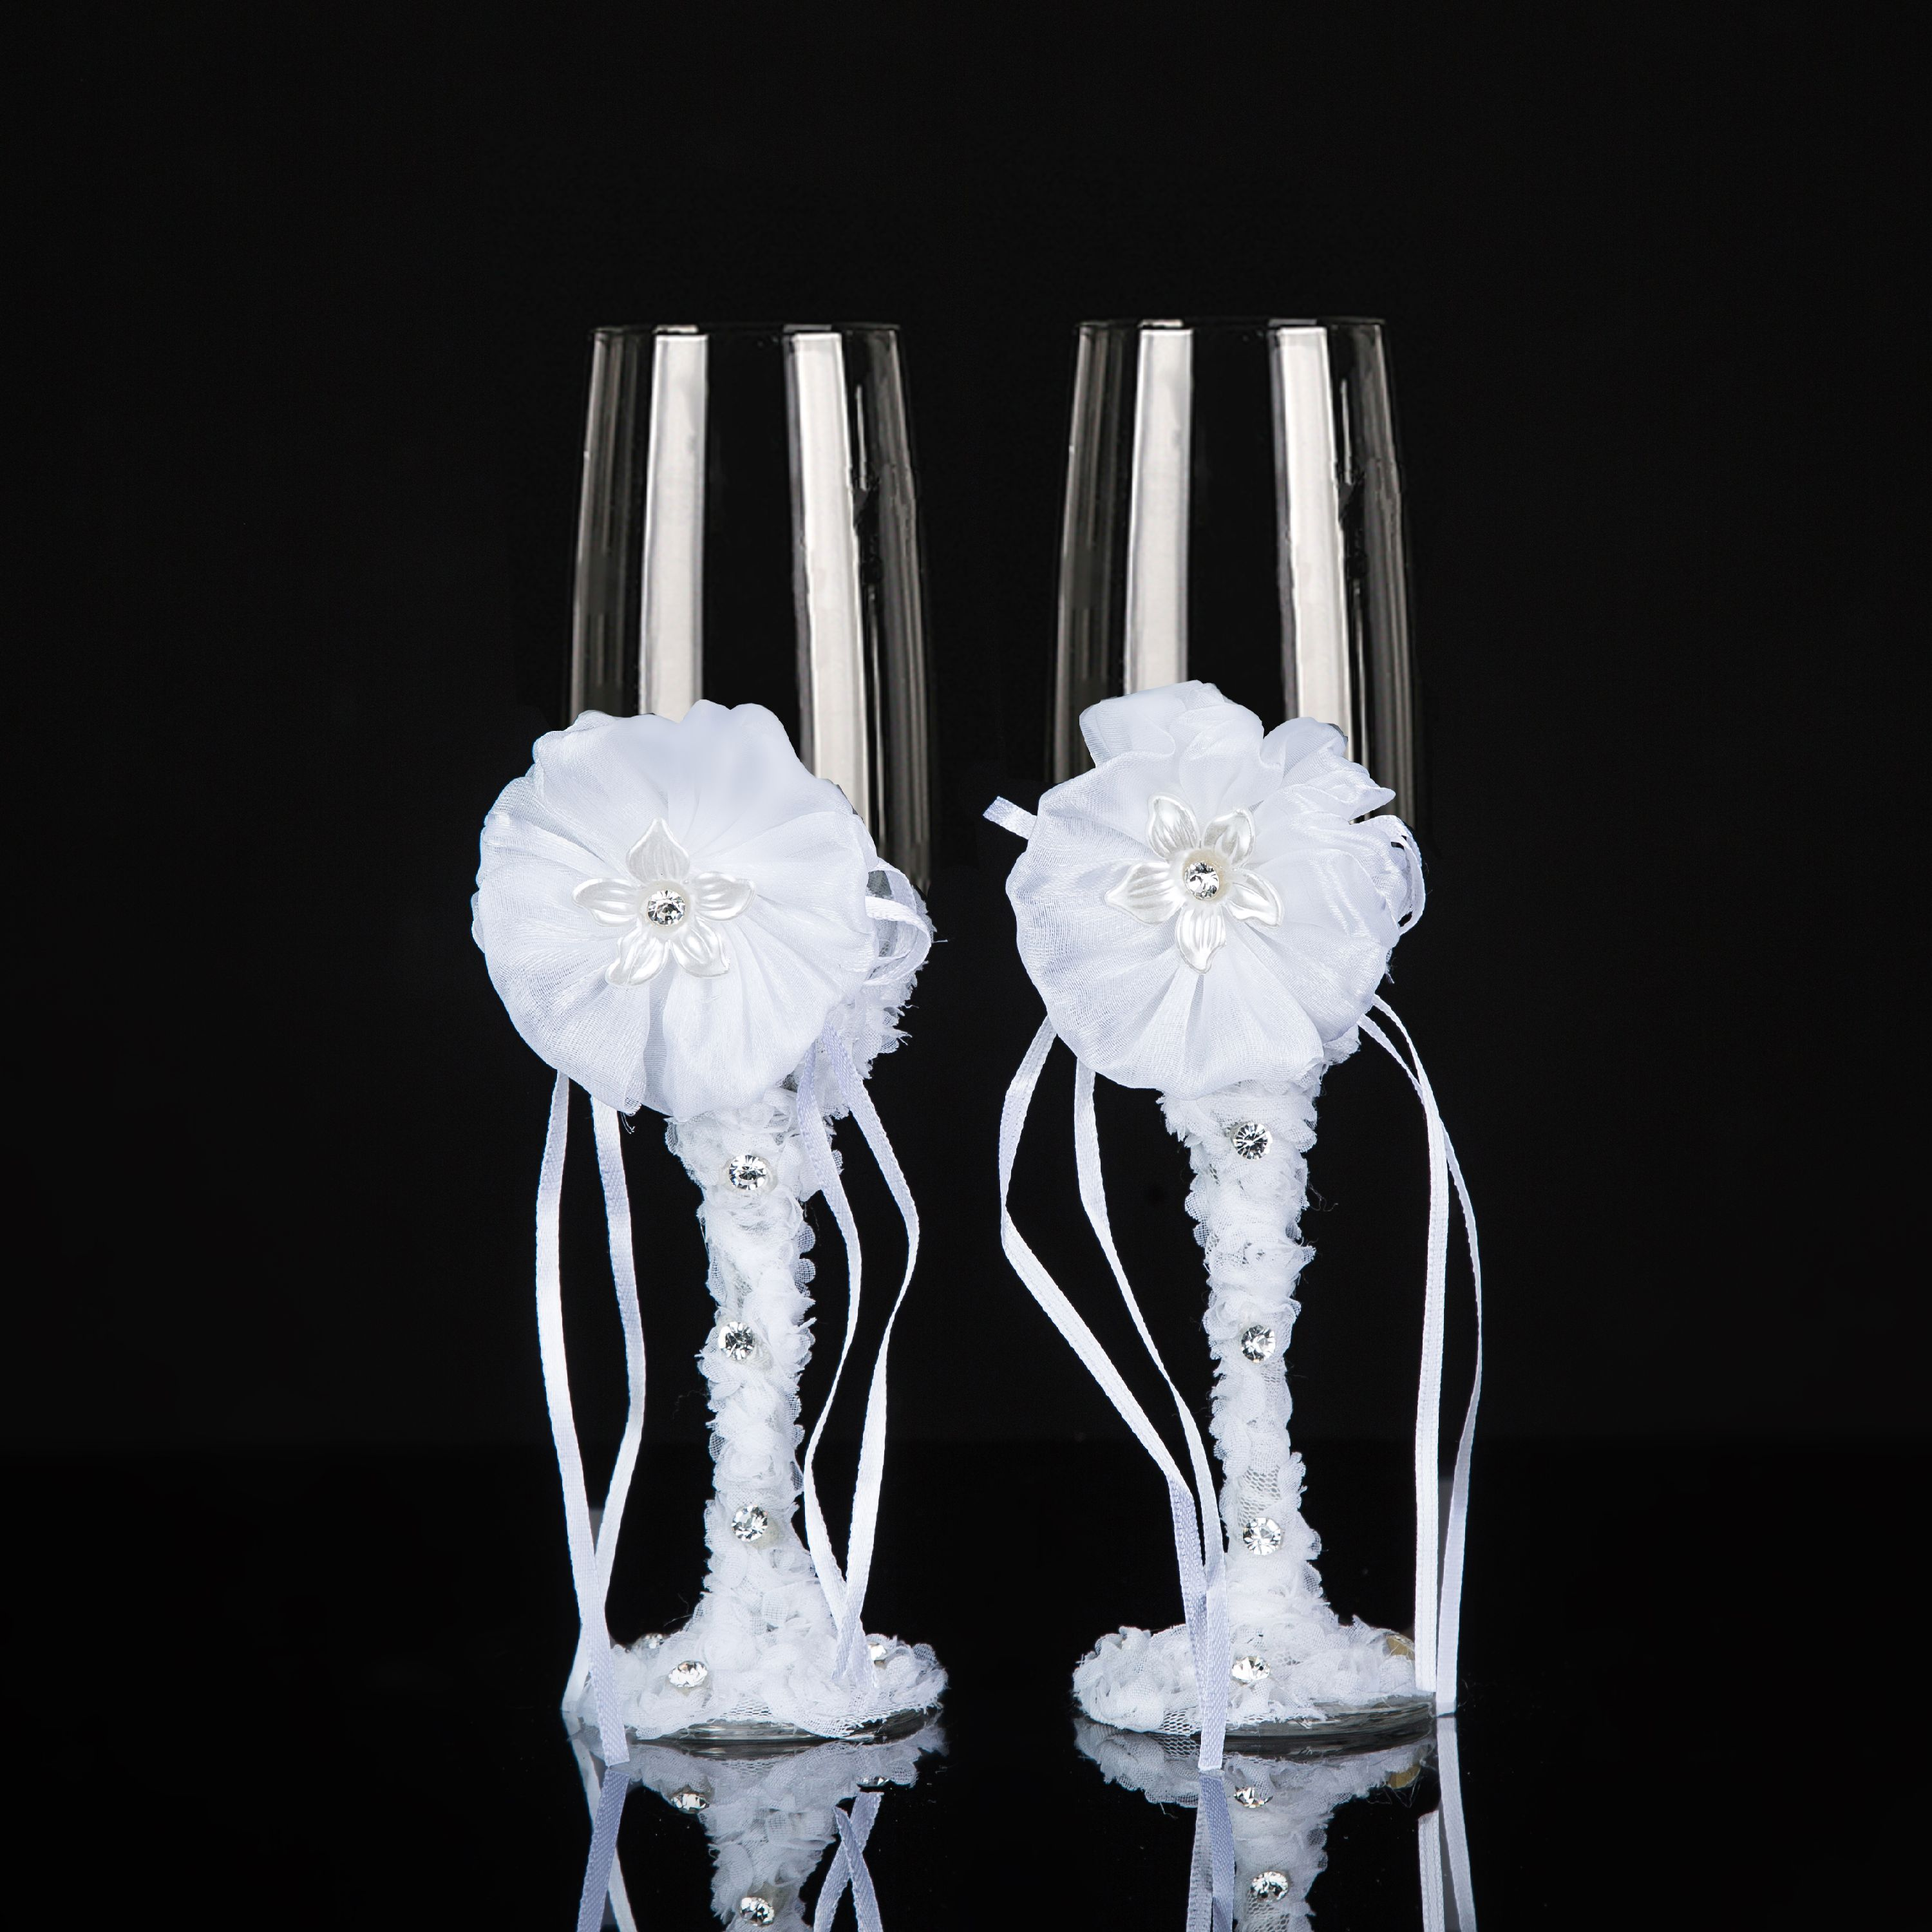 20 STUNNING SILVER CHAMPAGNE GLASSES DIE CUTS  WITH A BOW